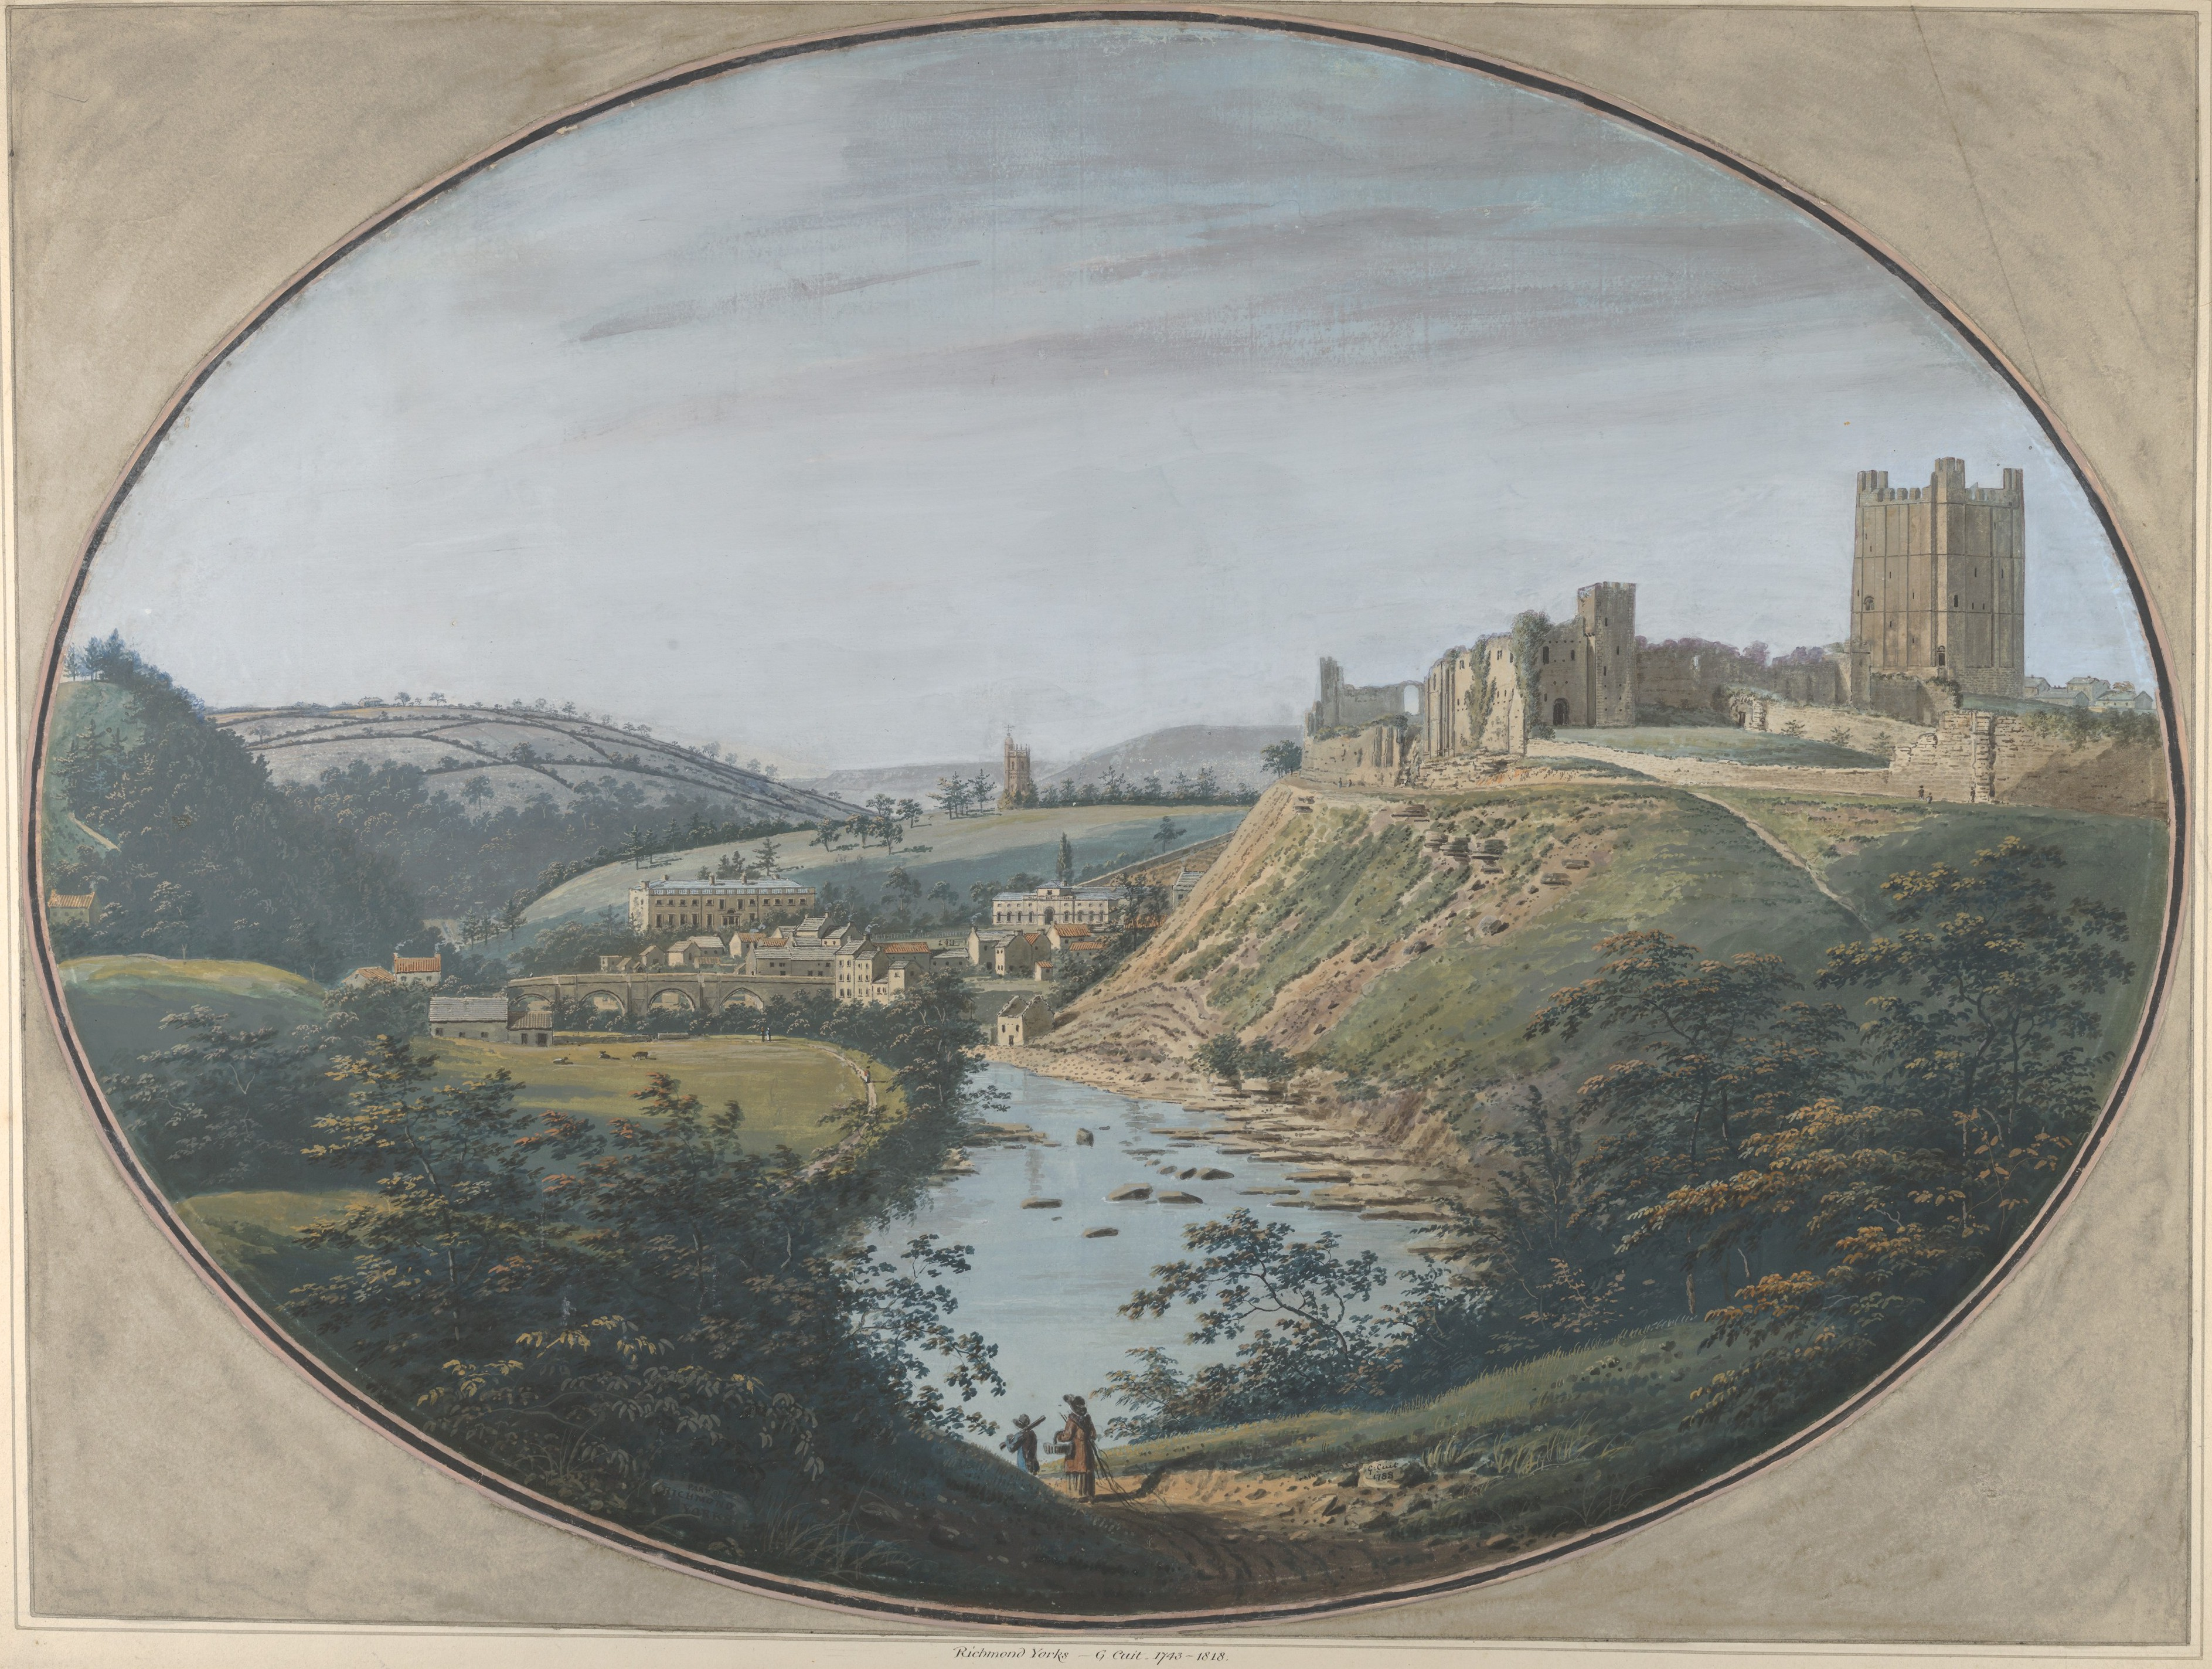 george cuit the elder | view of richmond, yorkshire, england | the met